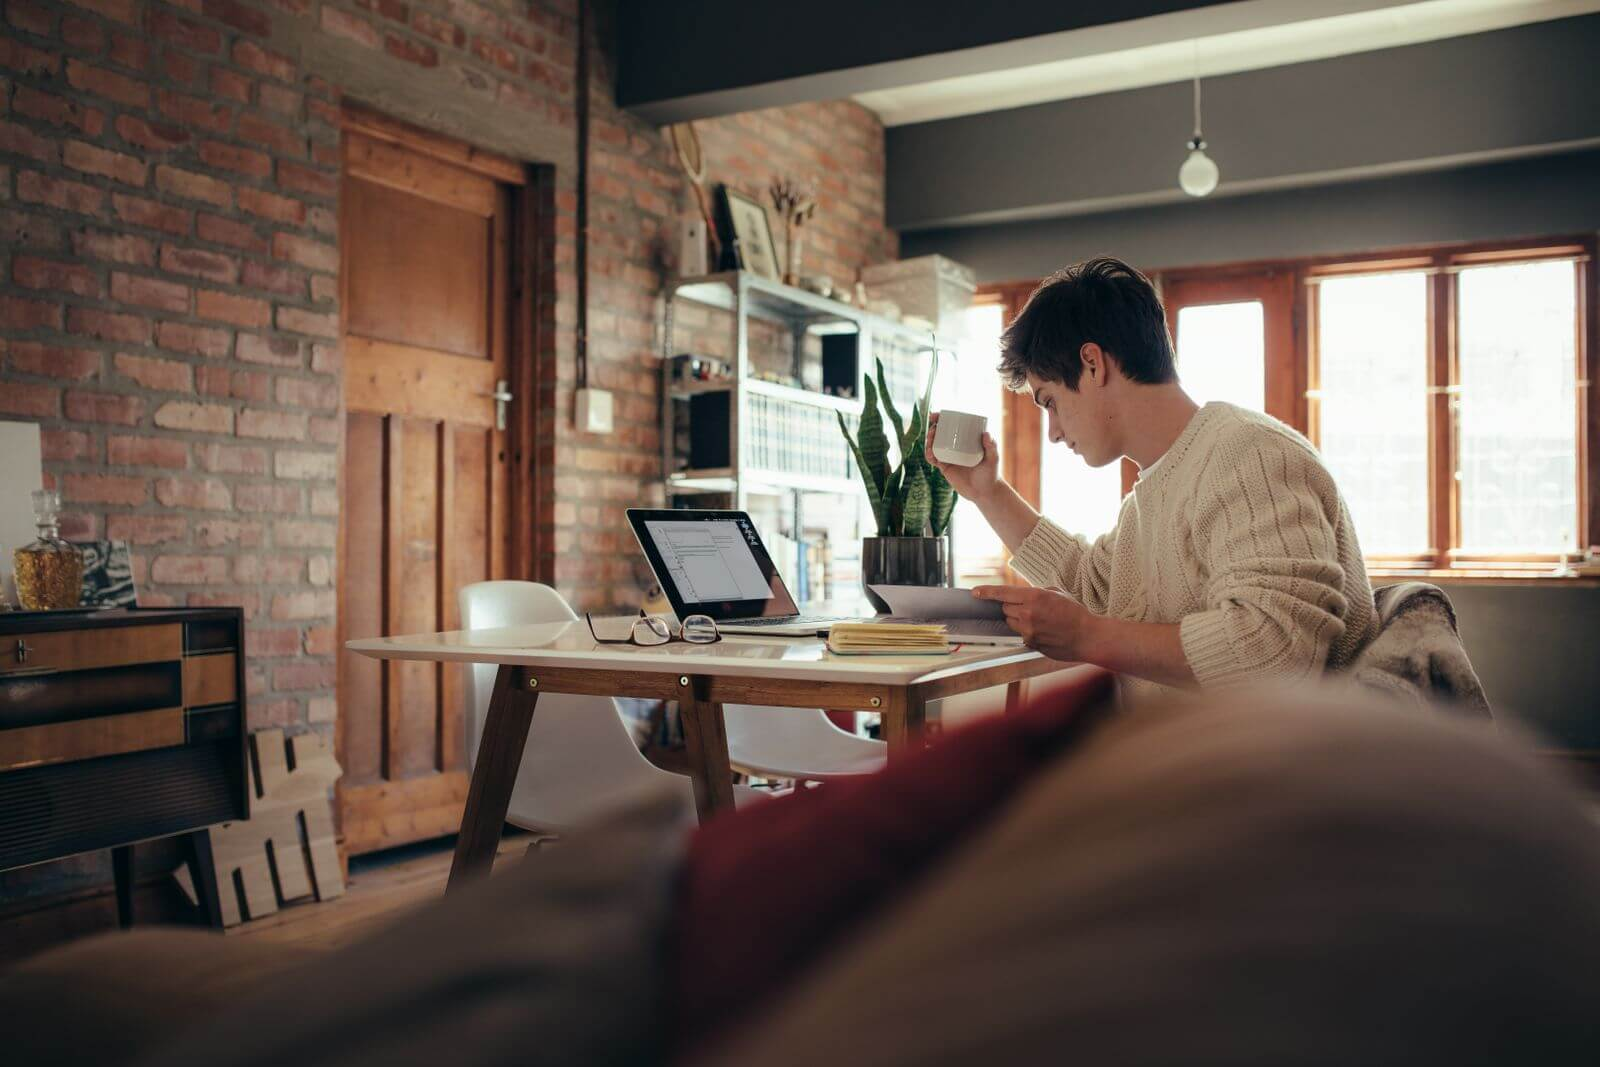 What Are the Benefits of Letting Your Employees Work from Home?